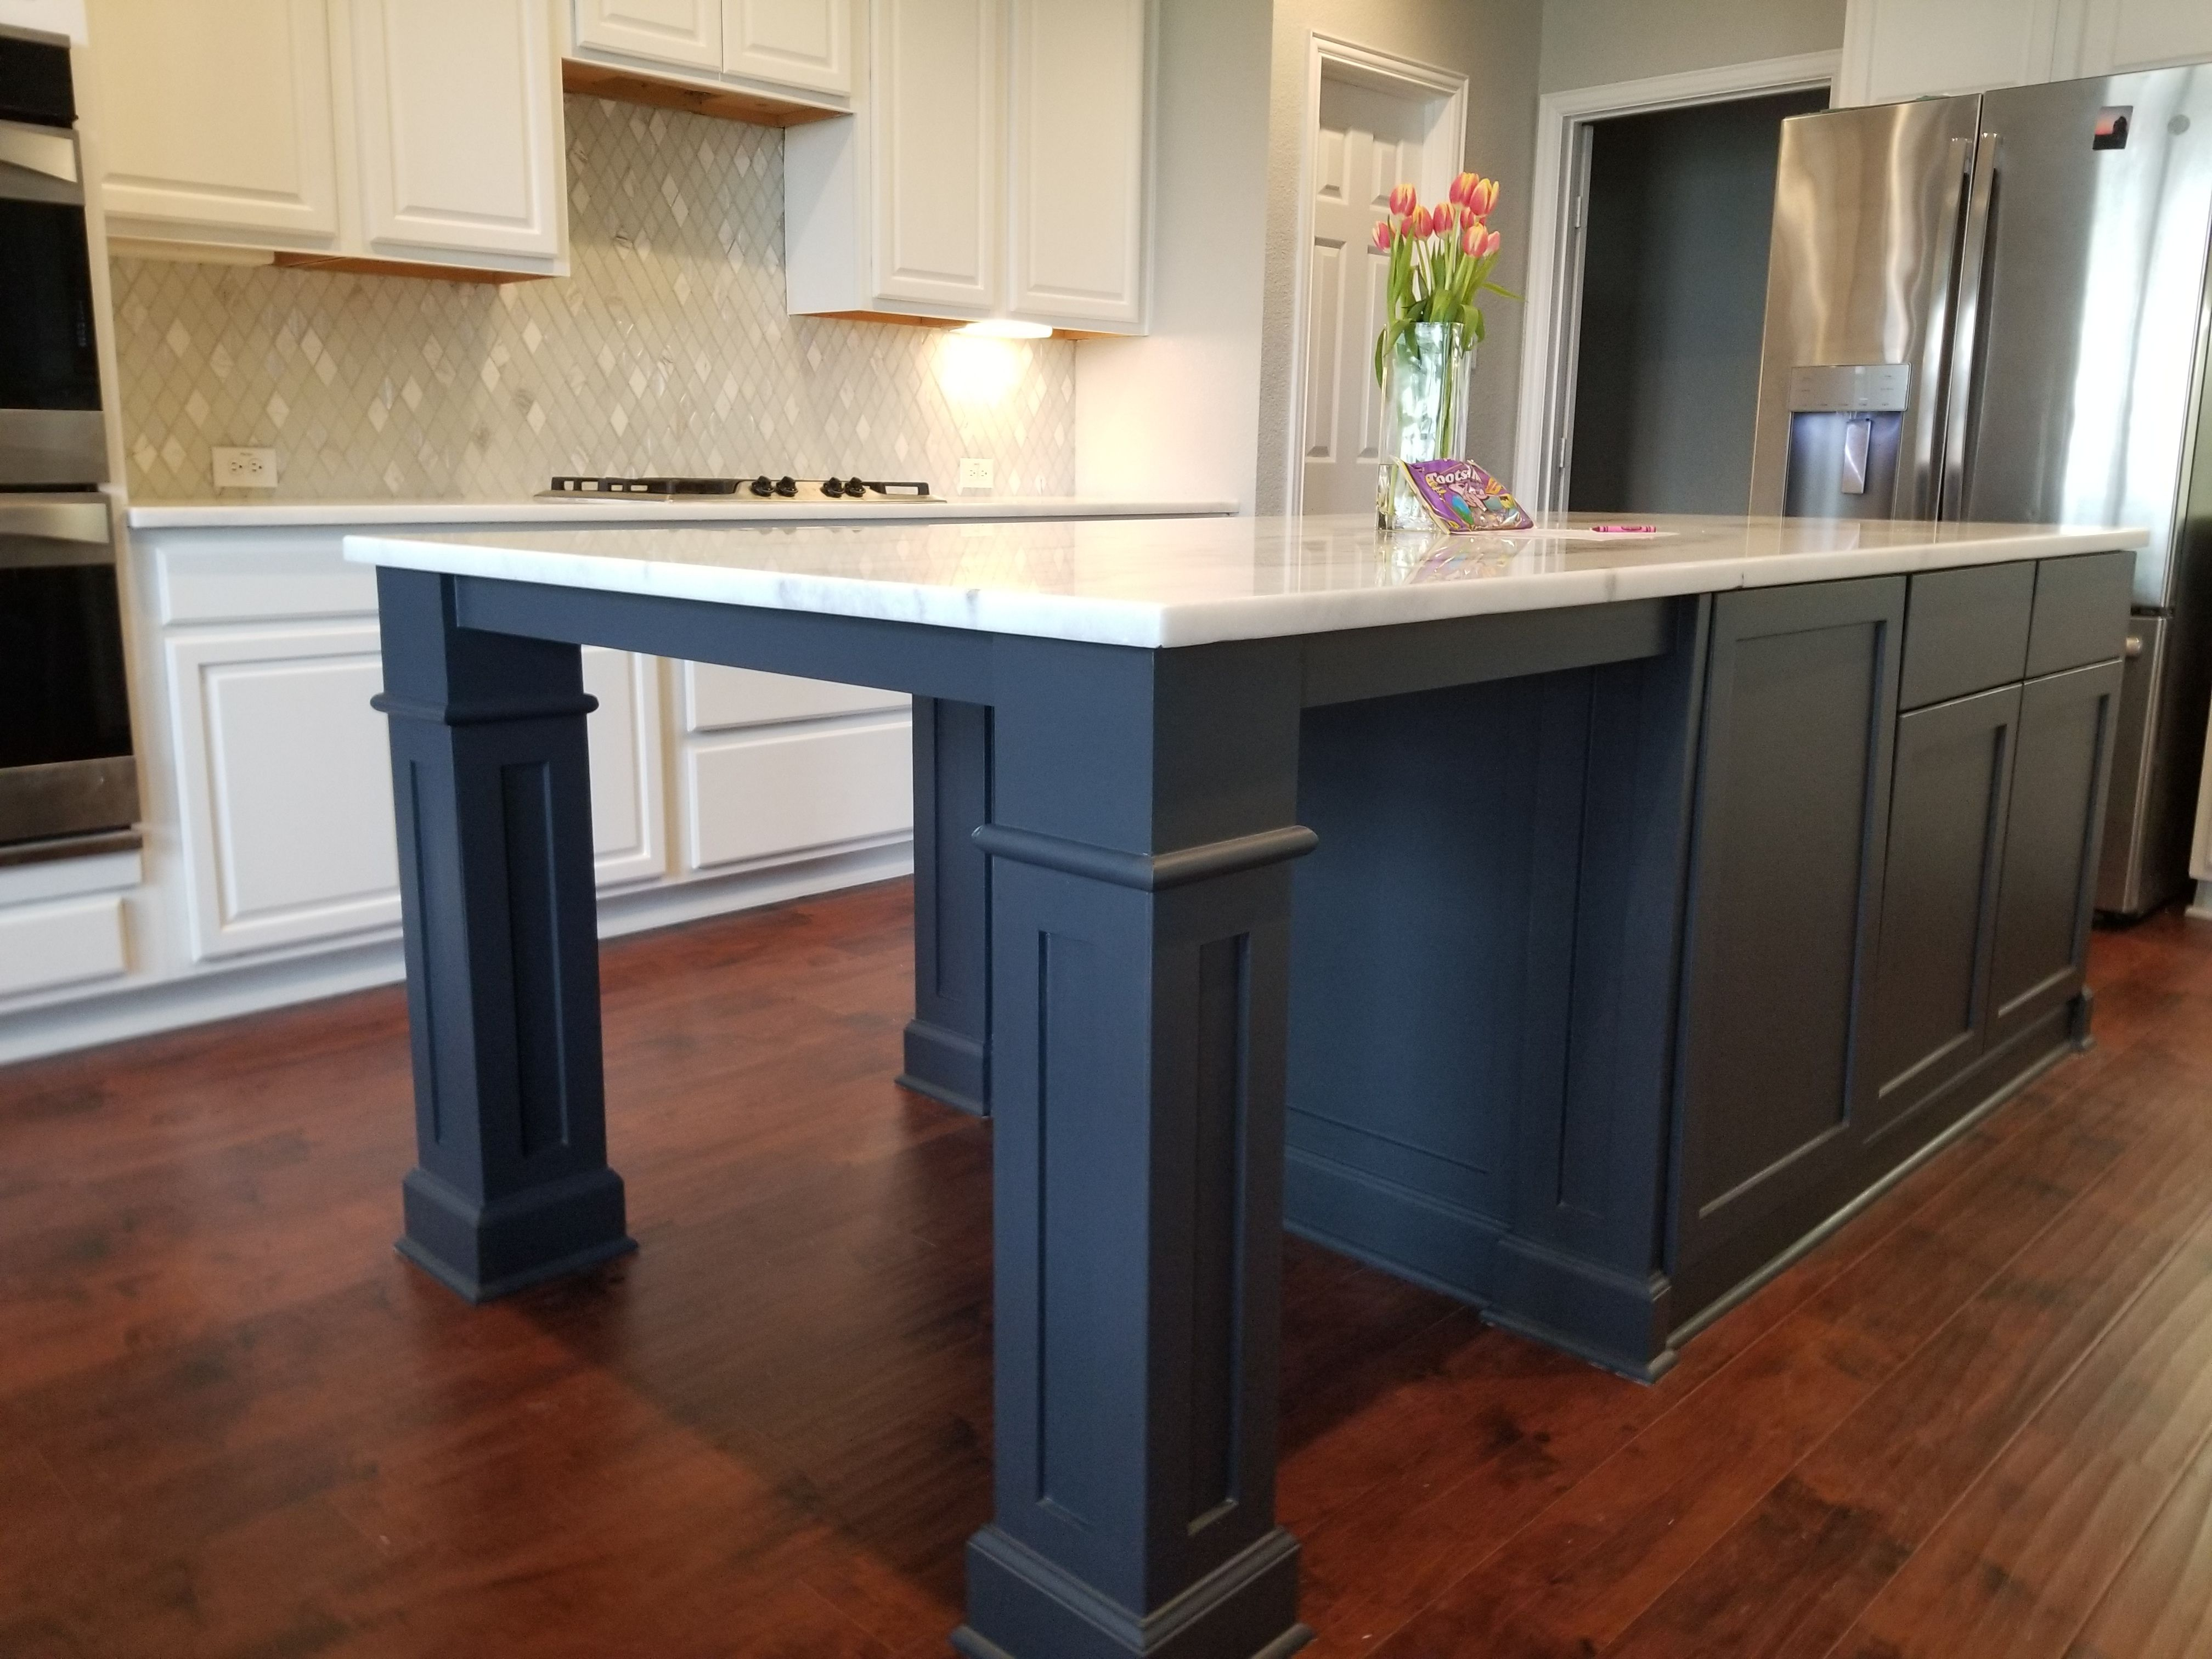 Cabinet Refacing - Kitchen Tune-Up | Cabinet refacing ...